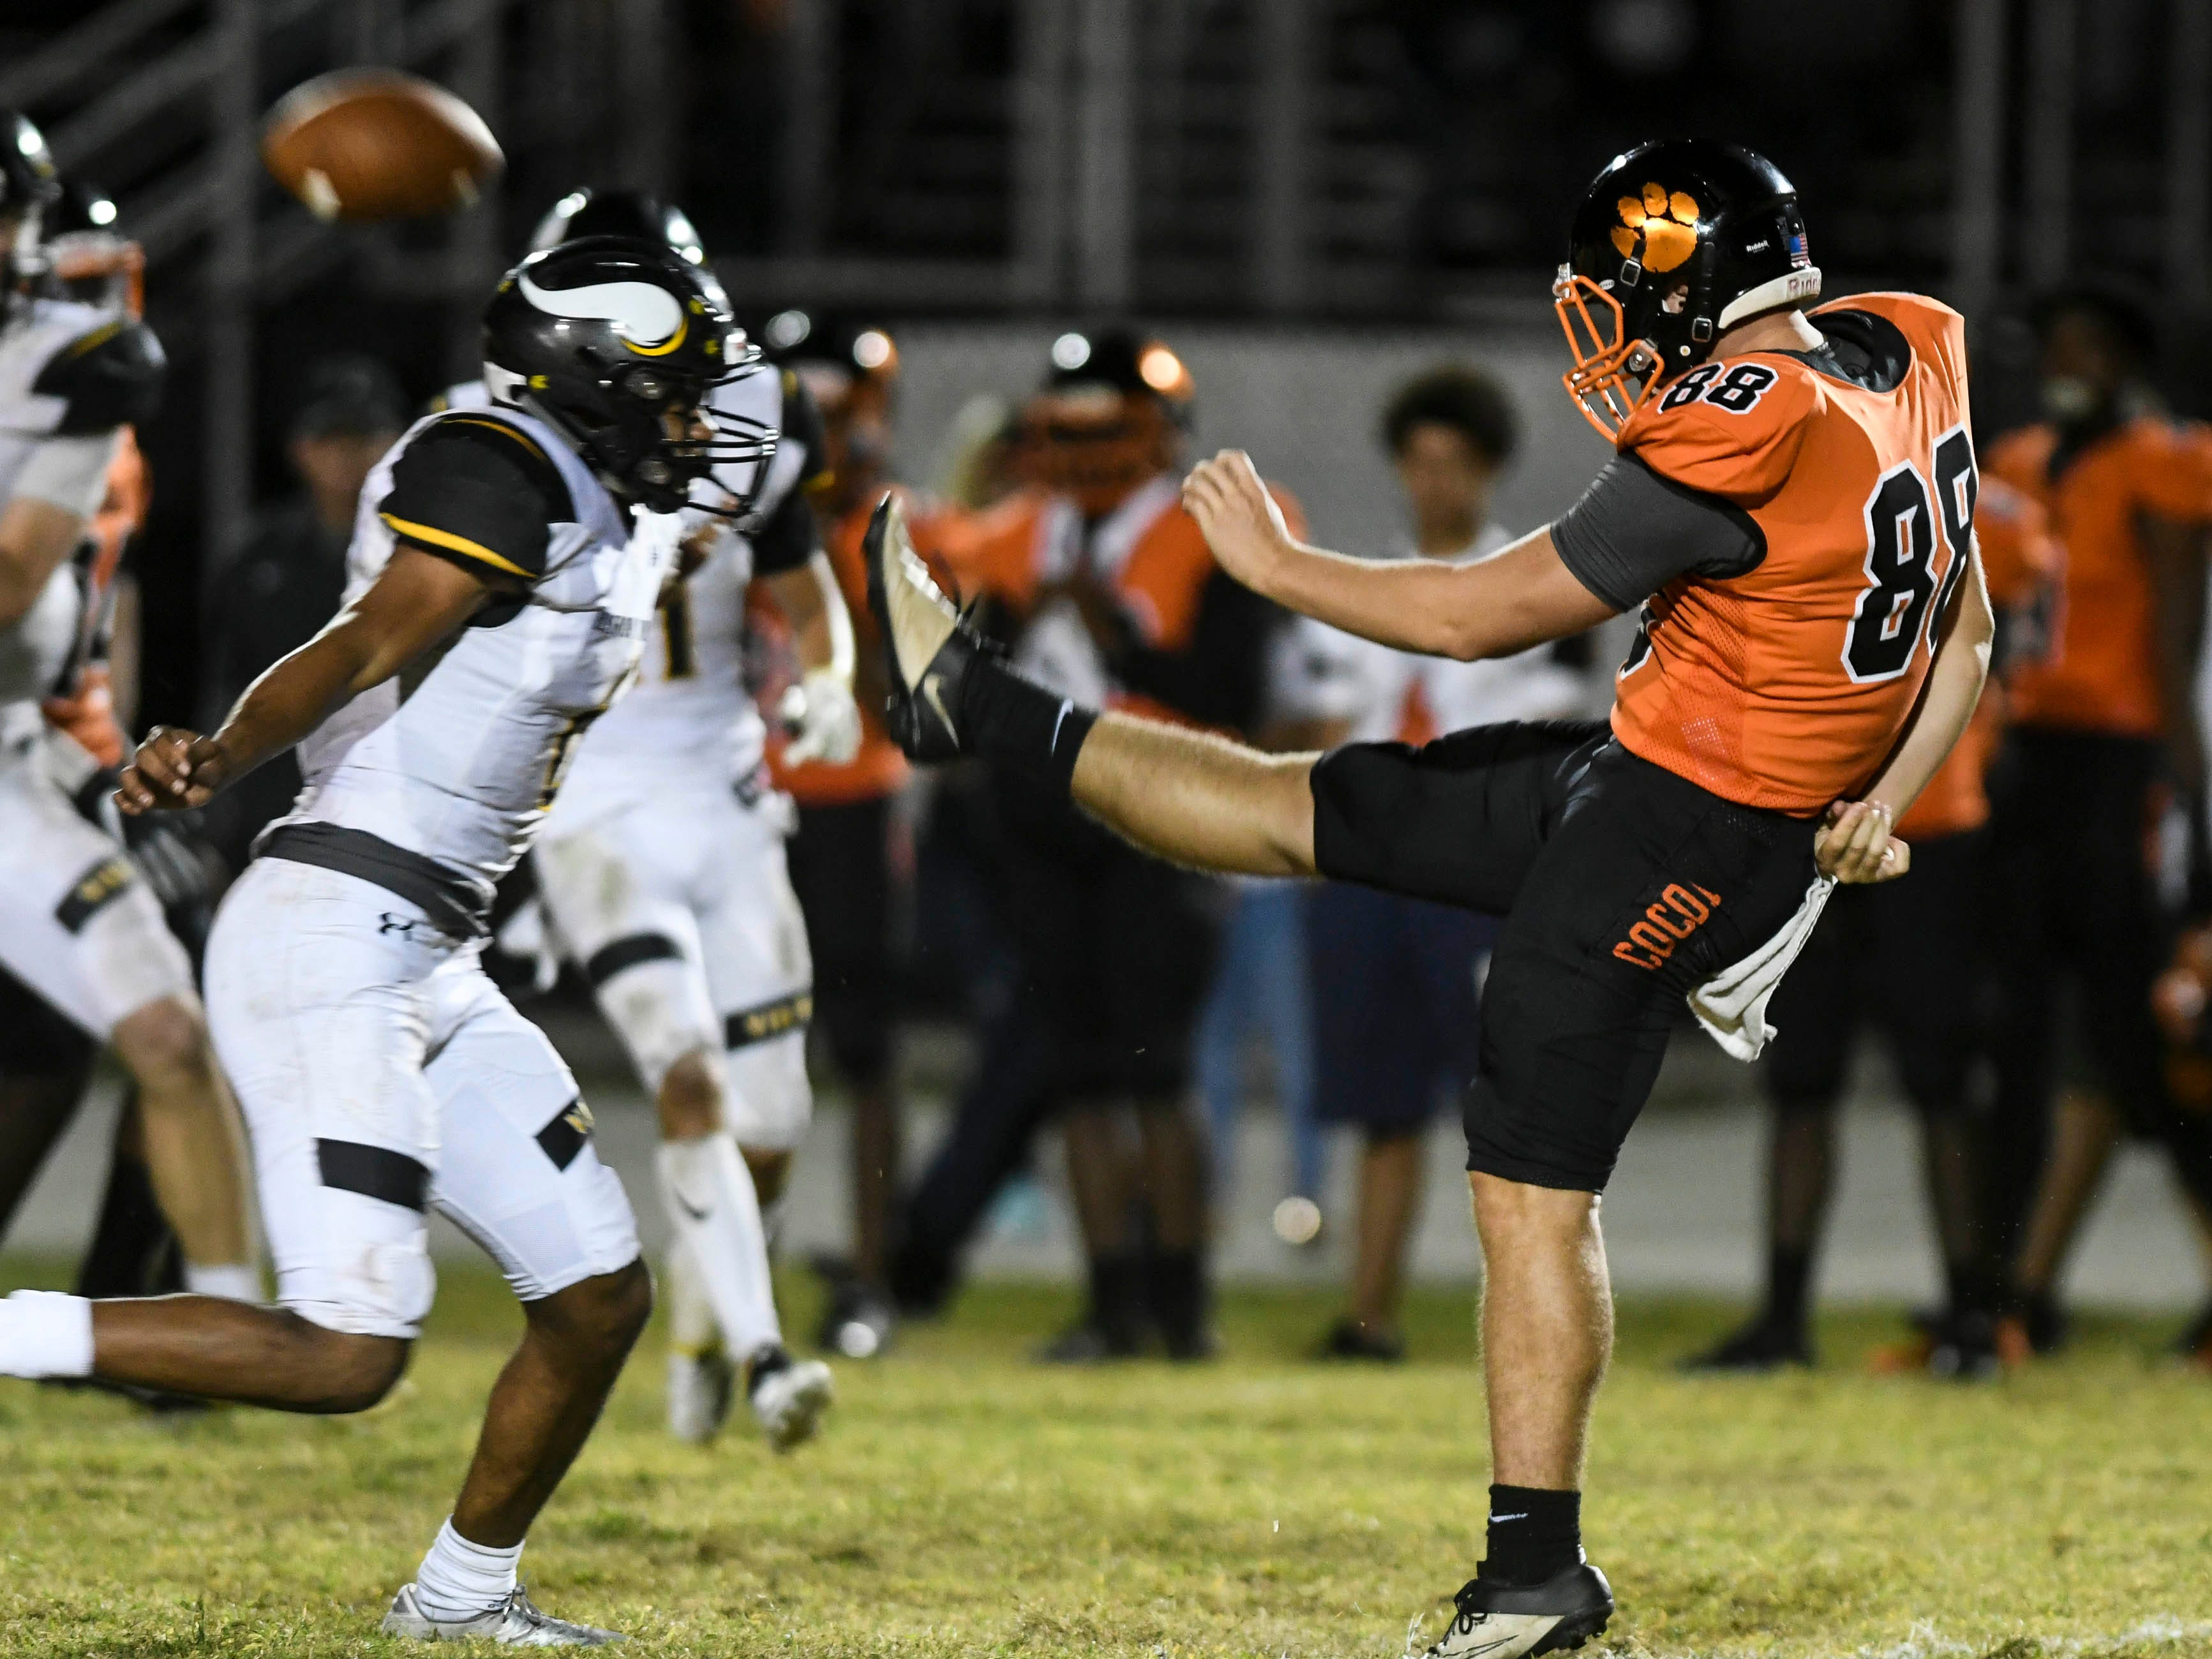 Cocoa's Alex Petruzzello punts the ball during Friday's game against Bishop Verot at Blake Stadium.